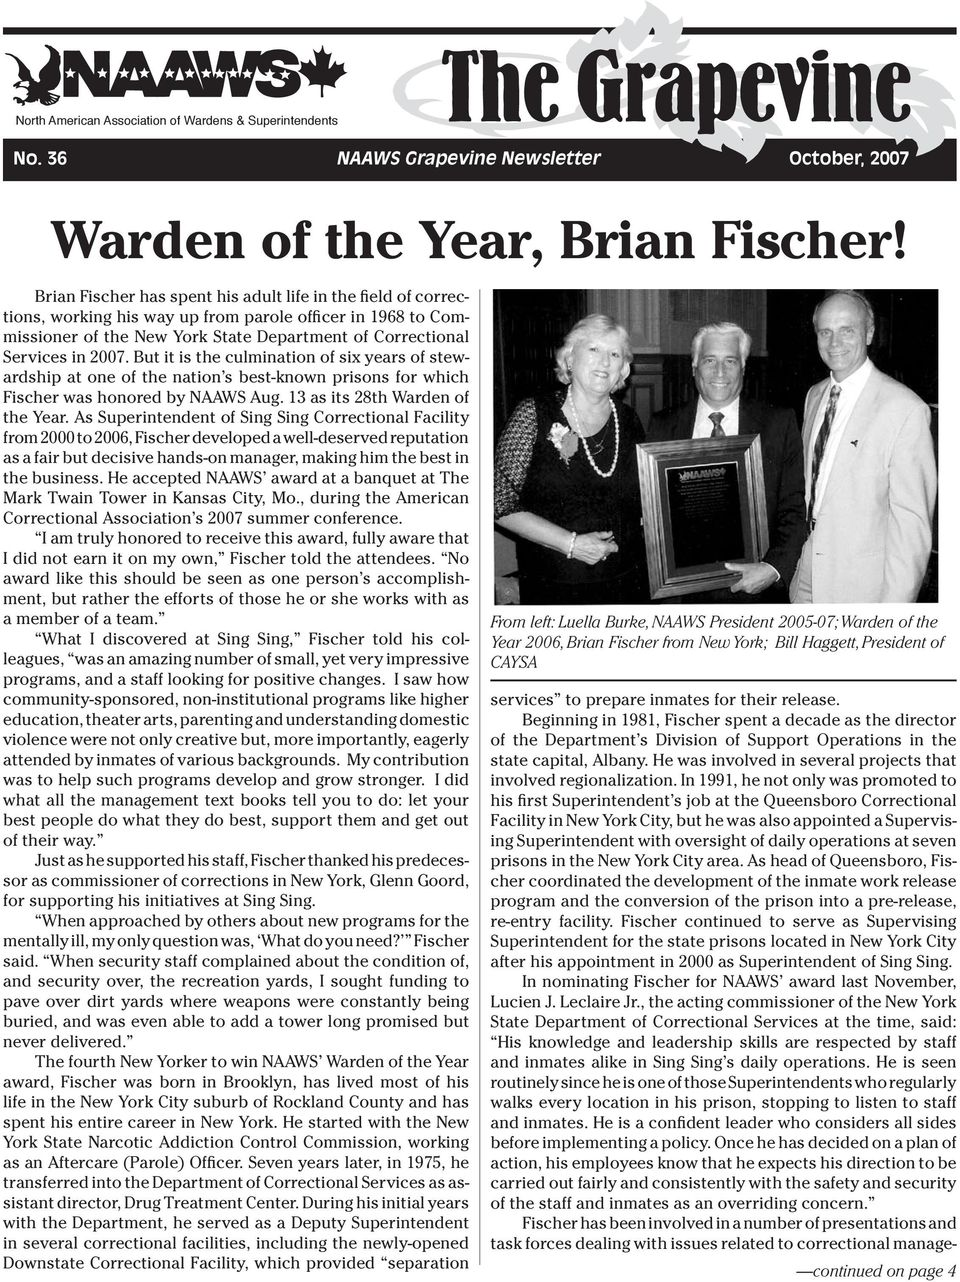 But it is the culmination of six years of stewardship at one of the nation s best-known prisons for which Fischer was honored by NAAWS Aug. 13 as its 28th Warden of the Year.